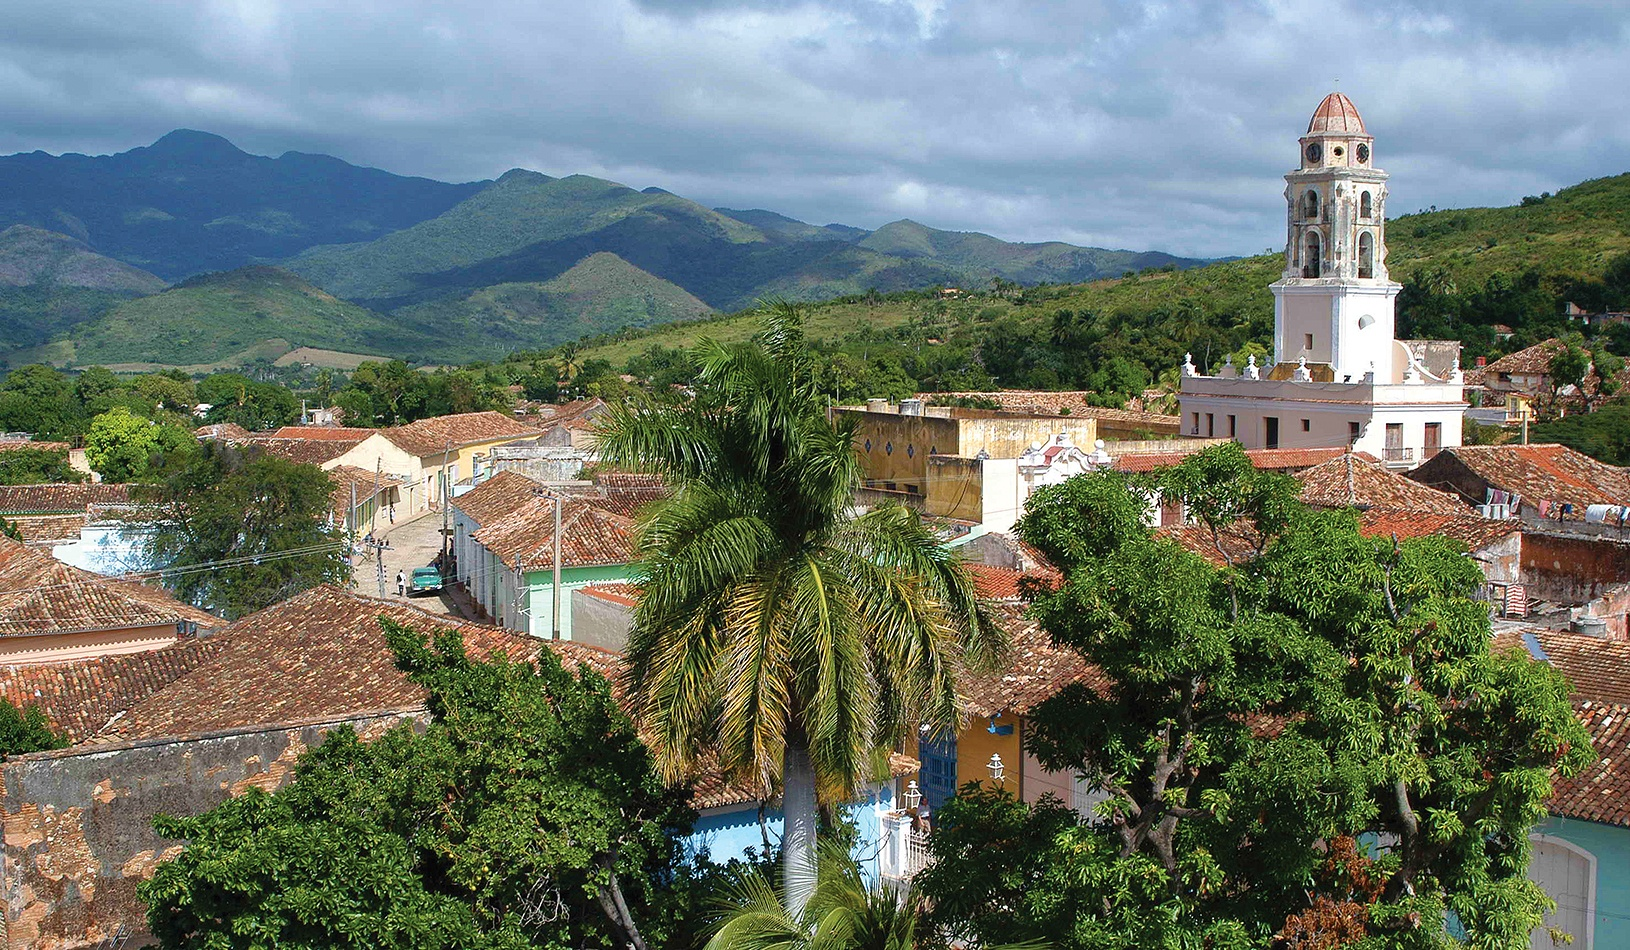 Panoramic view over the city of Trinidad, Cuba with mountains in the background and a cloudy sky